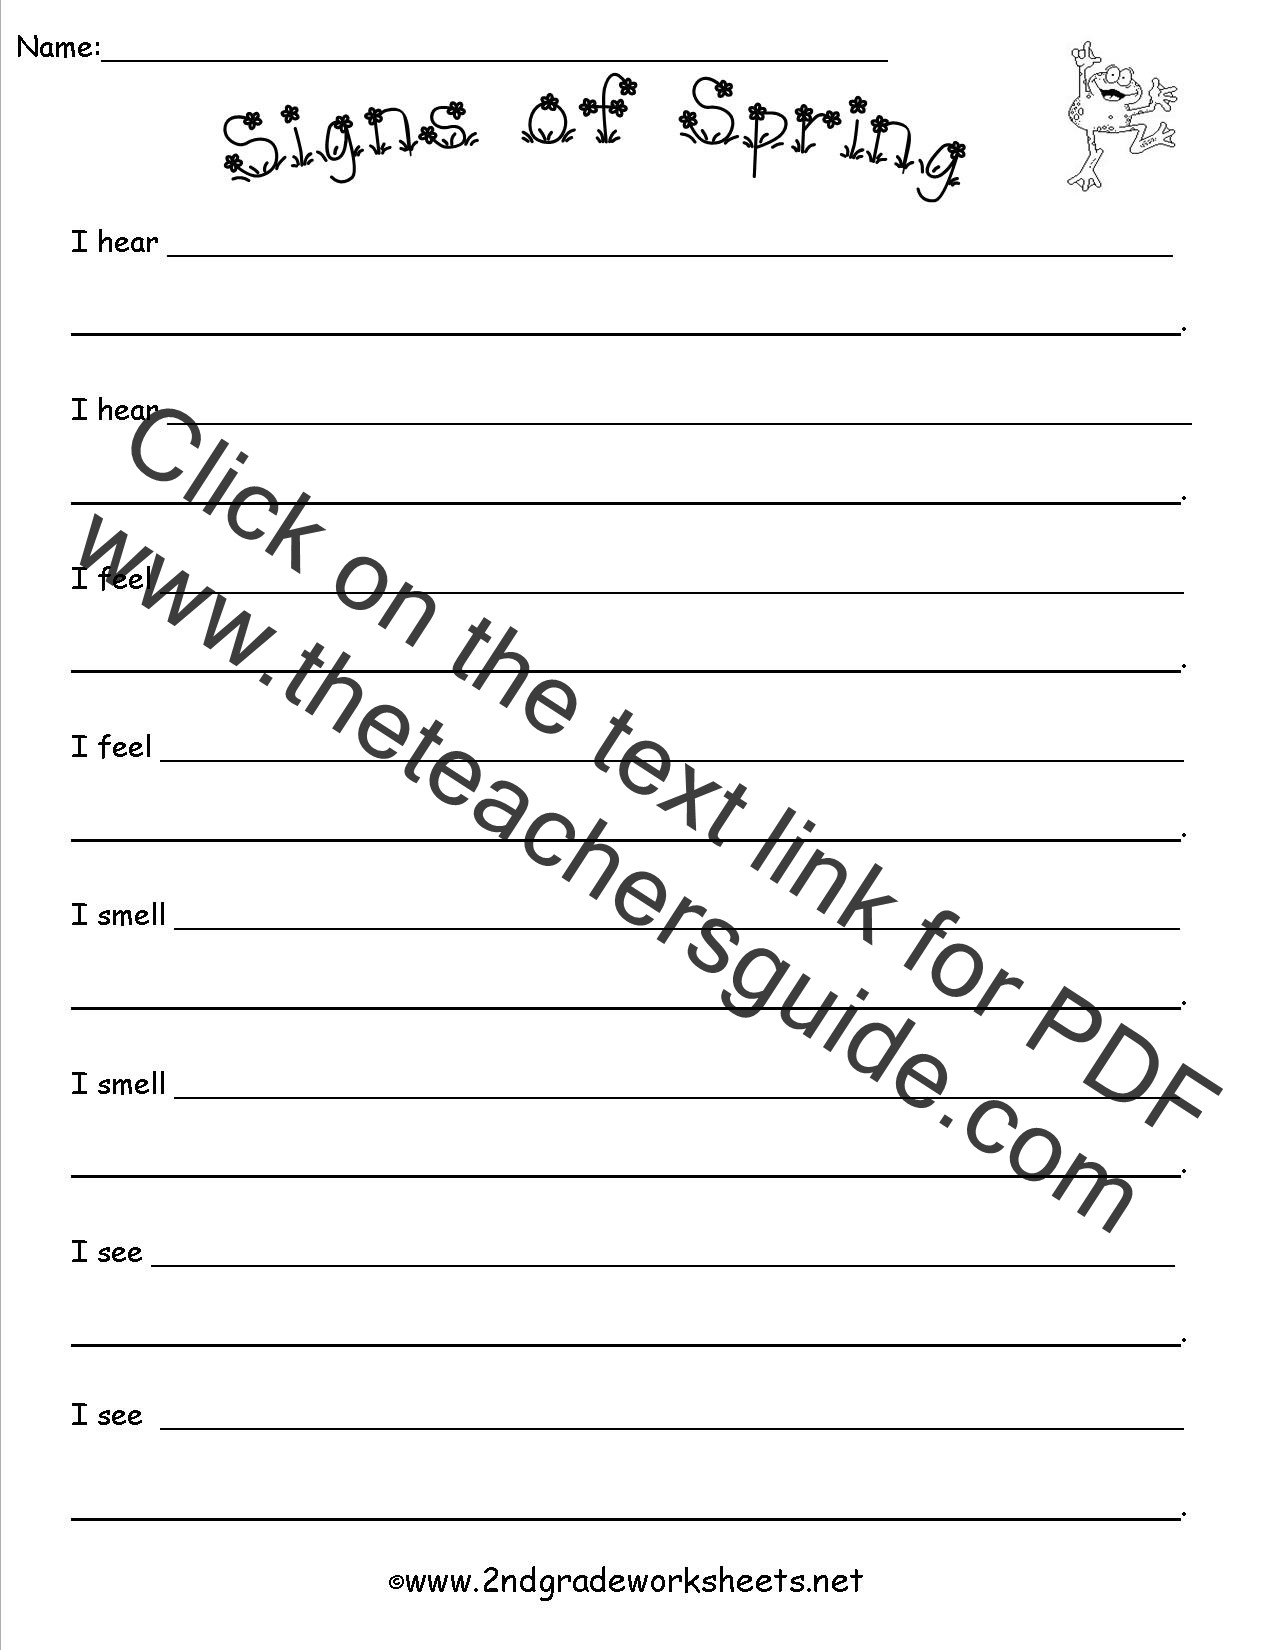 2nd Grade Weather Worksheets Weather Worksheet New 727 Free Weather Related Worksheets